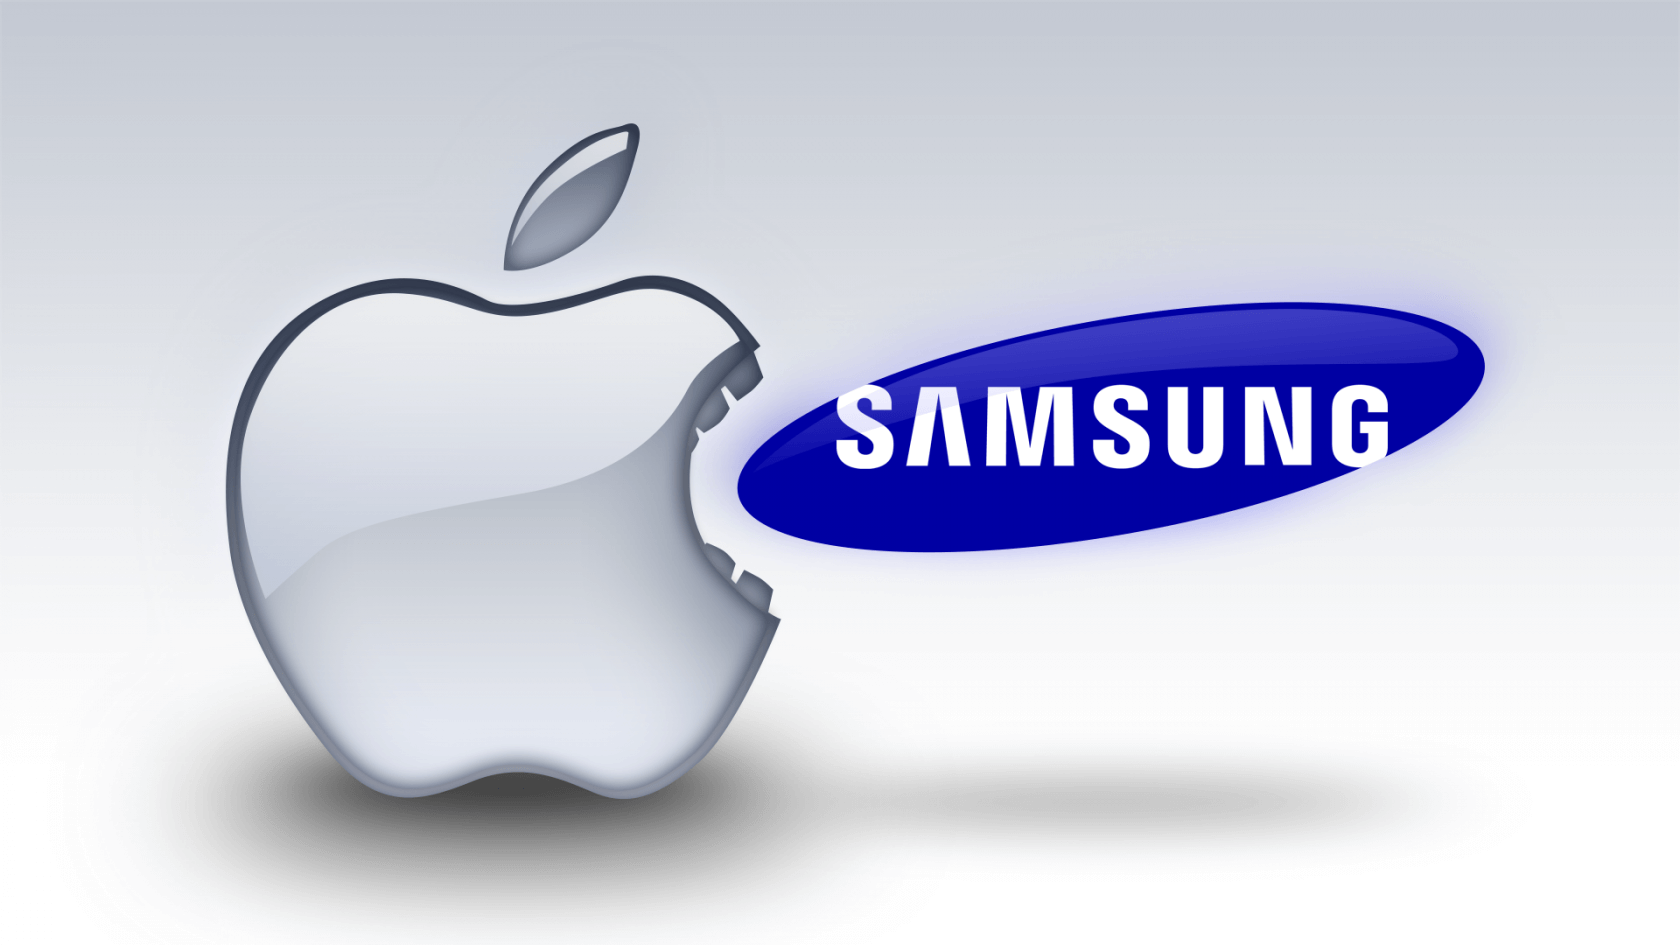 Apple sues Samsung for $1 billion in design patent violation